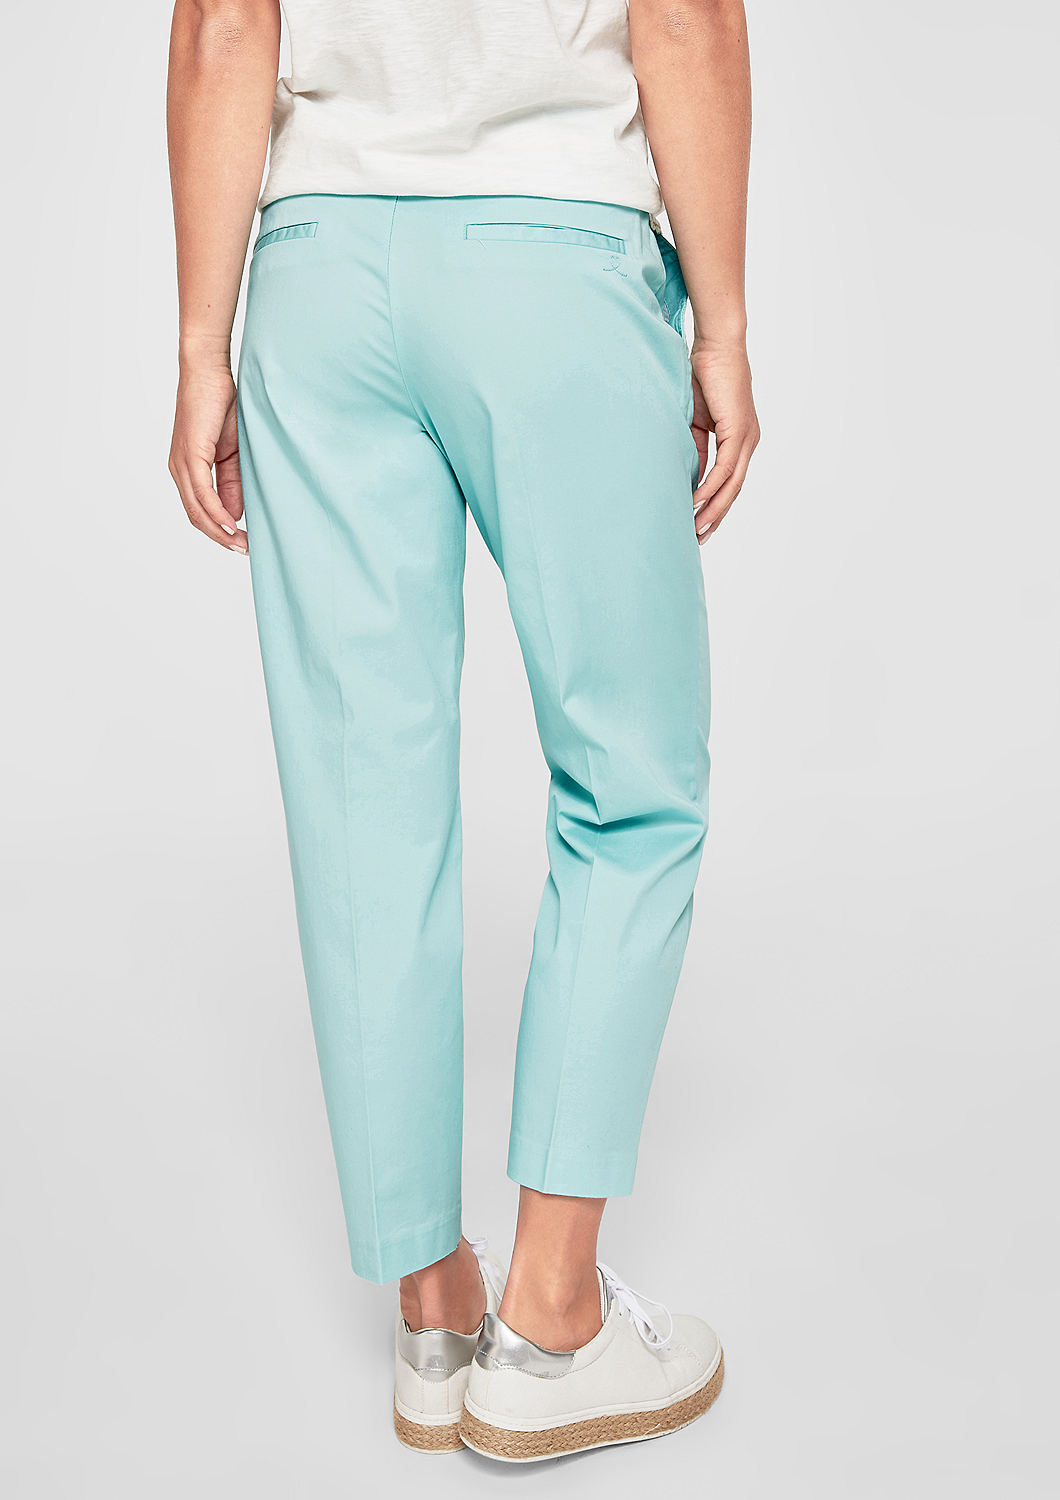 s.Oliver - Shape Ankle: Leichte Chino - 3